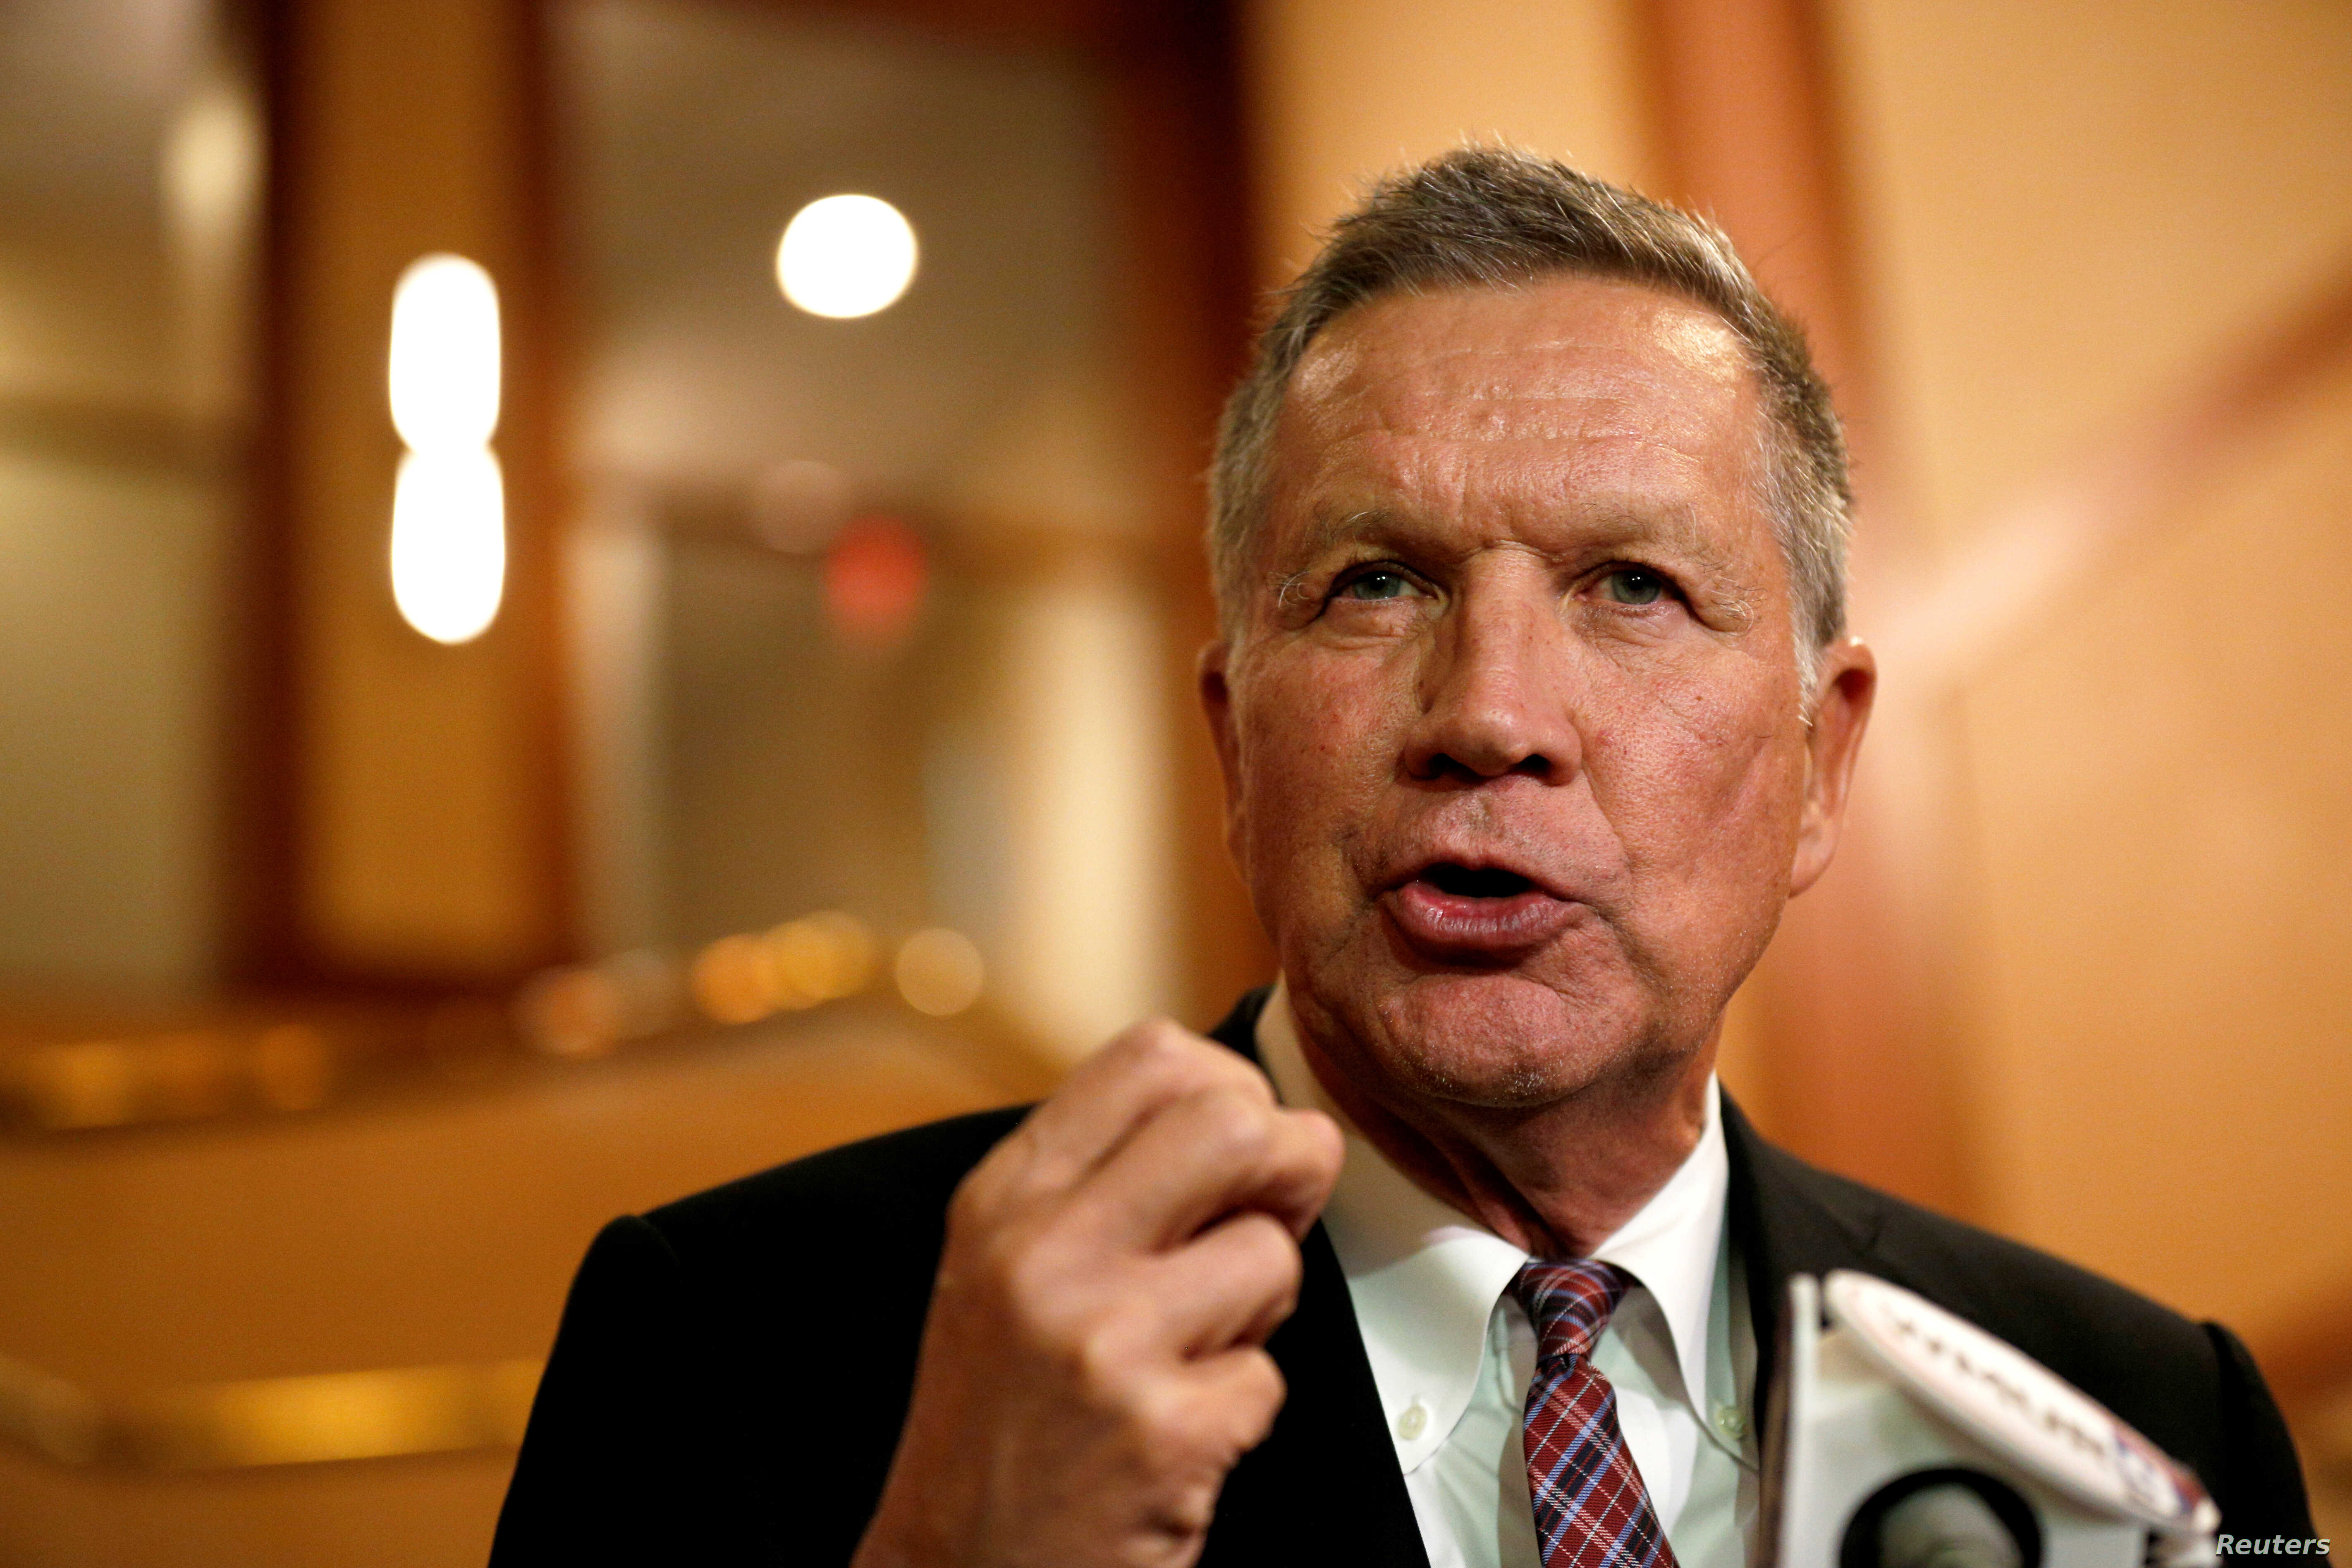 Ohio Governor and former presidential candidate John Kasich speaks to the press in Concord, New Hampshire, Nov.15, 2018.